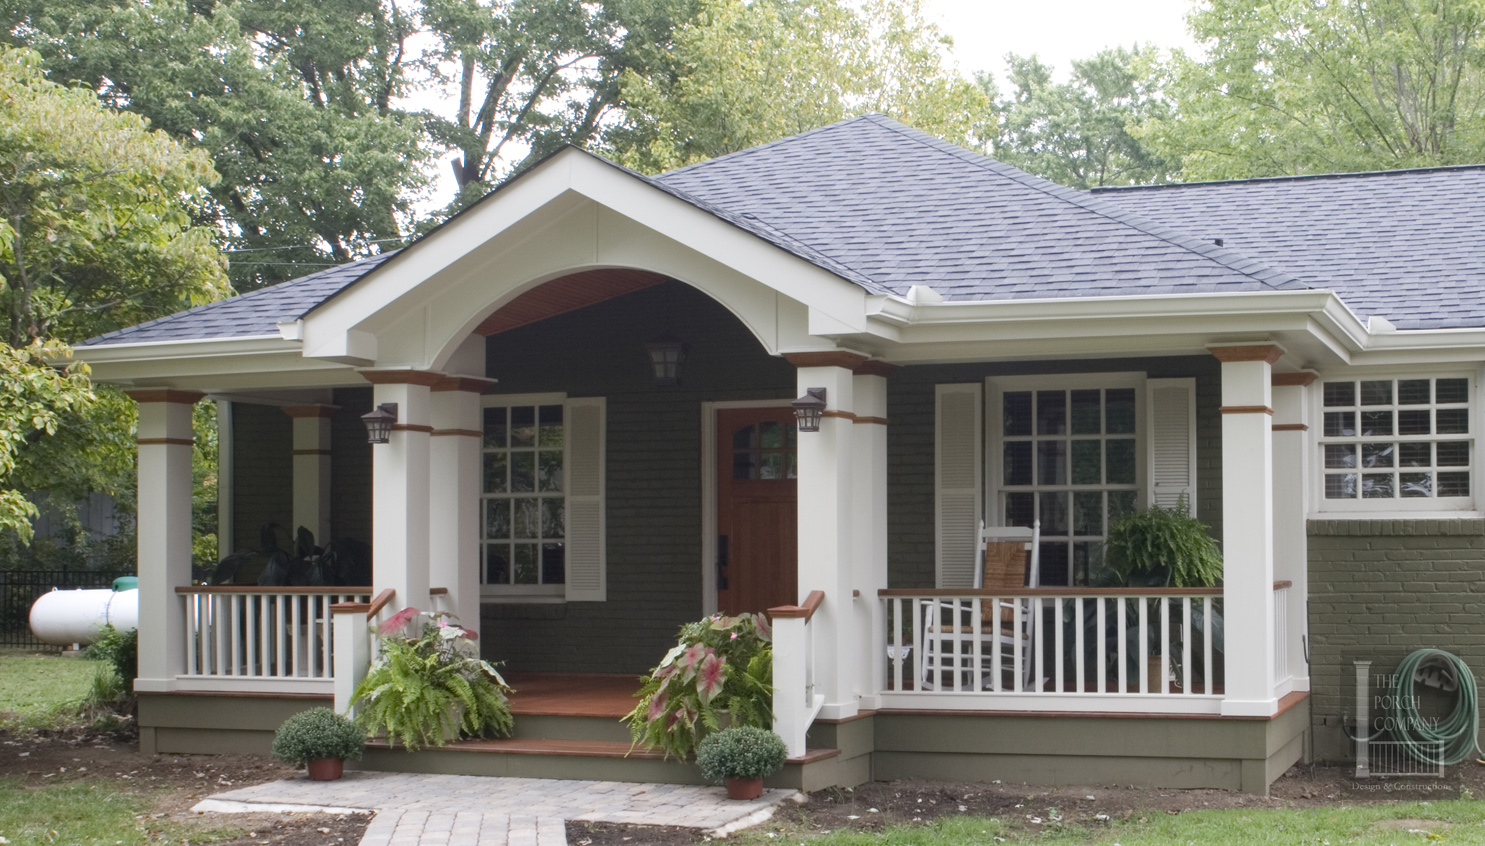 Possible Front Porch Design Plans: small home addition ideas